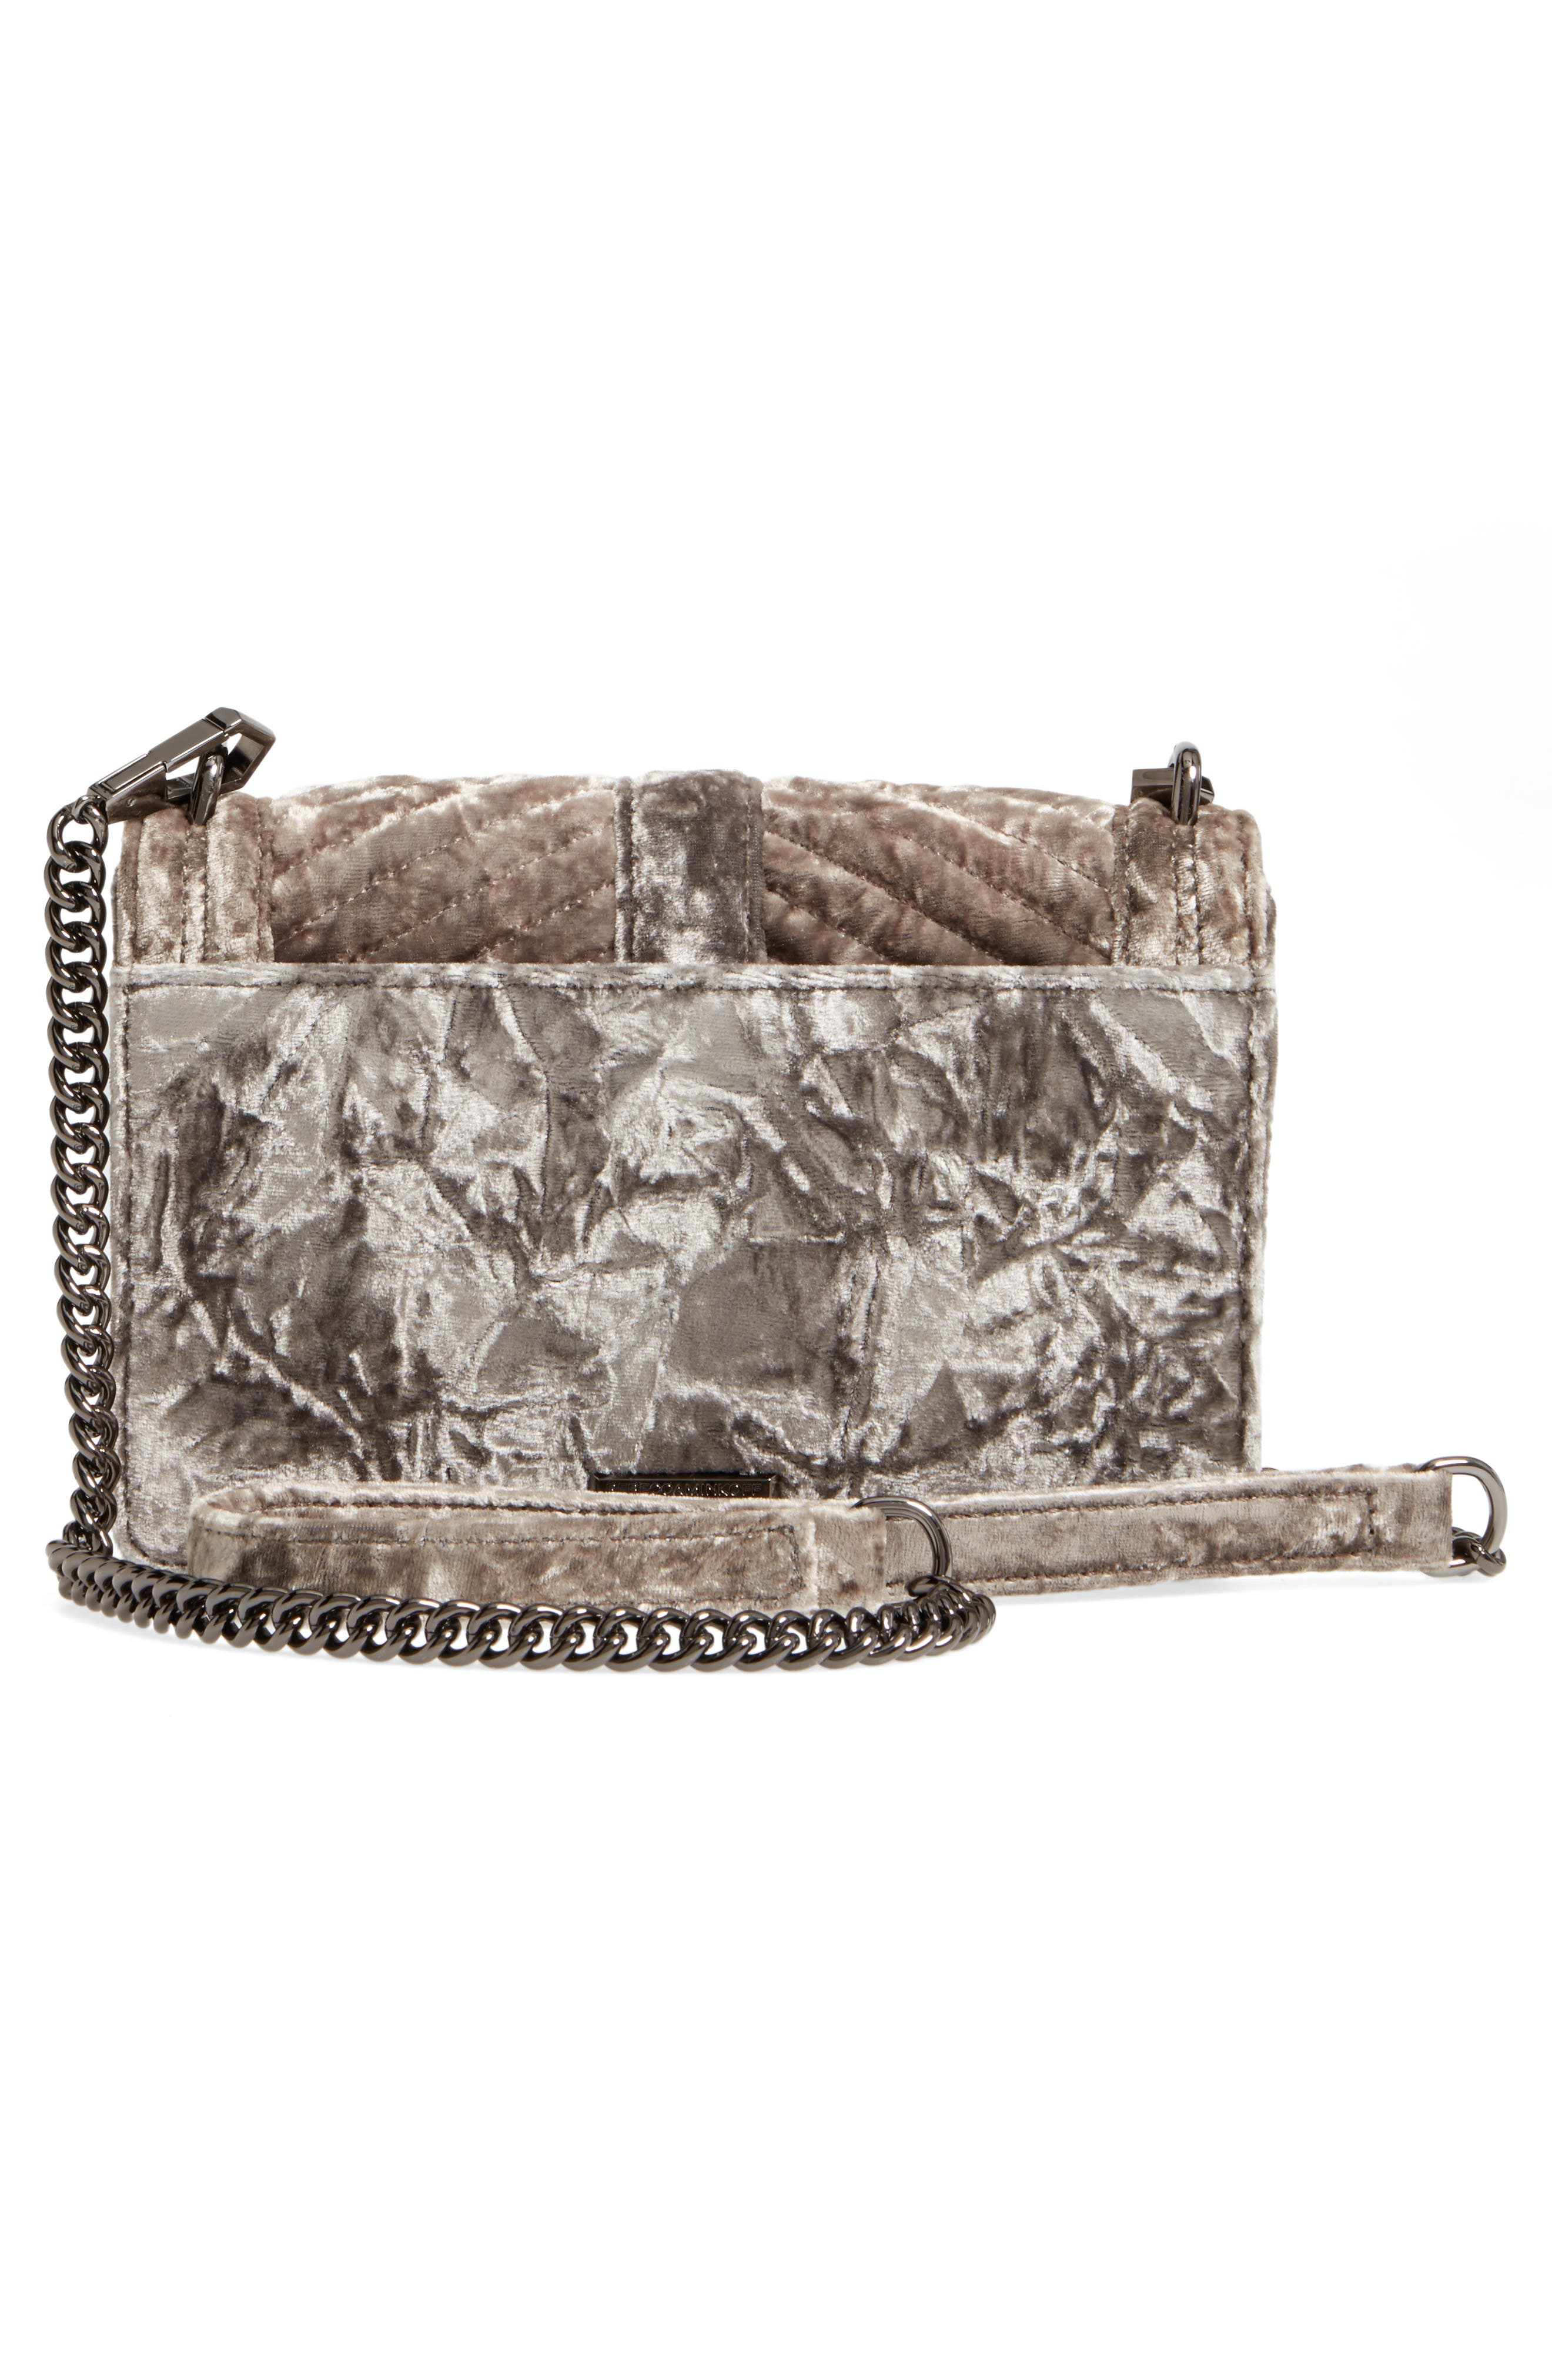 'Velvet Love' Crossbody Bag,                             Alternate thumbnail 2, color,                             Grey